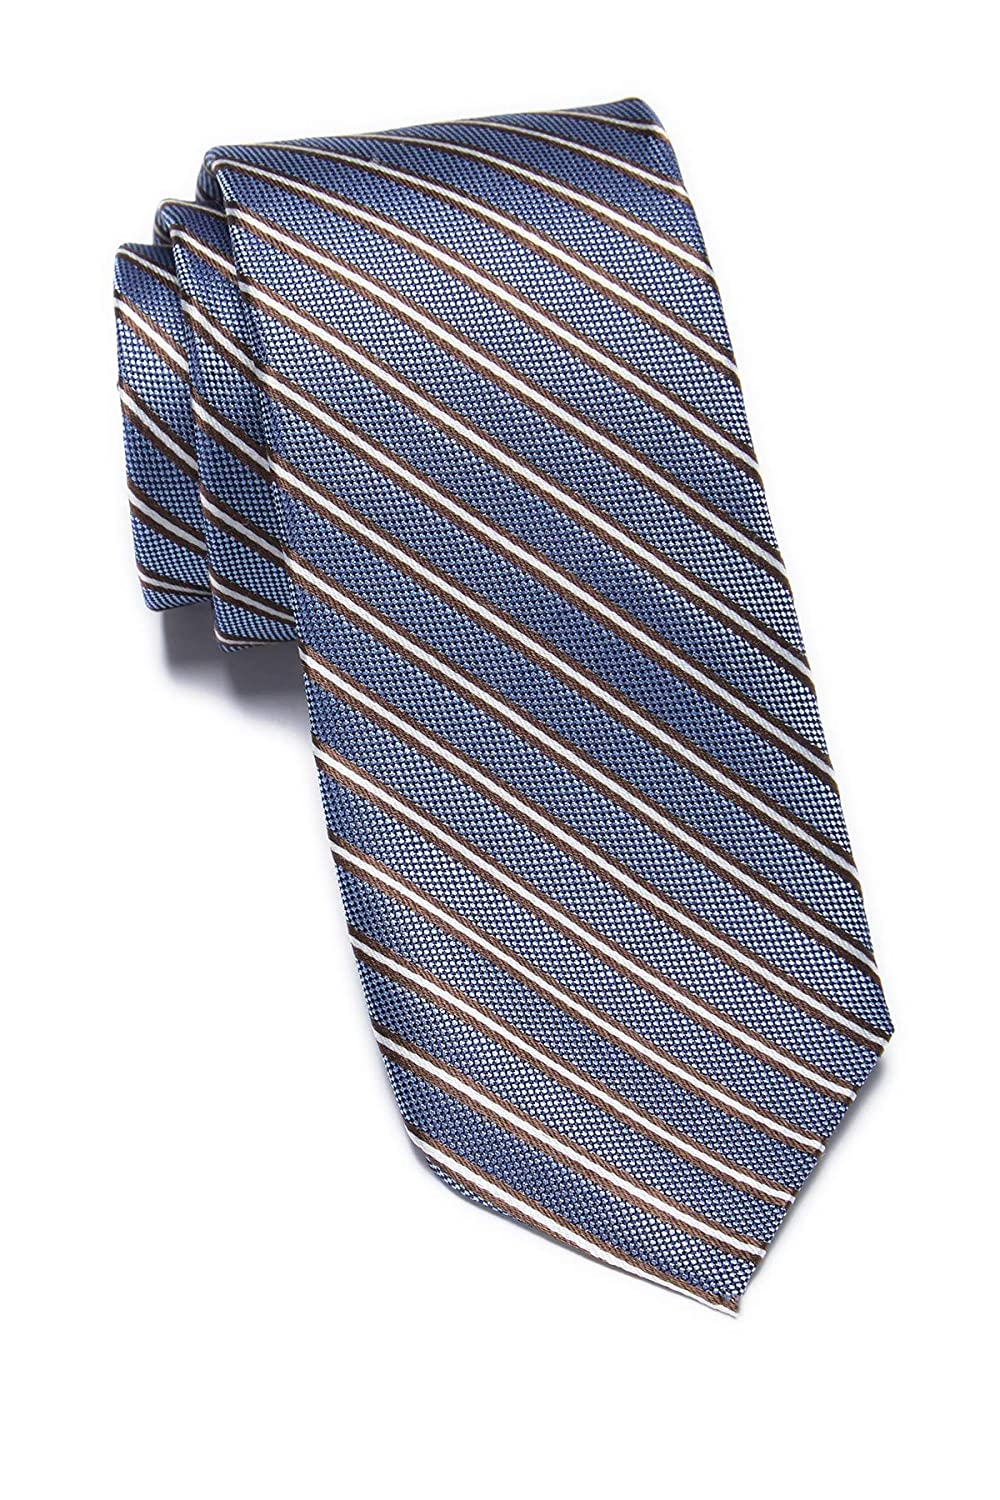 Ben Sherman Lumber Stripe Silk Tie - Blue: Amazon.es: Ropa y ...